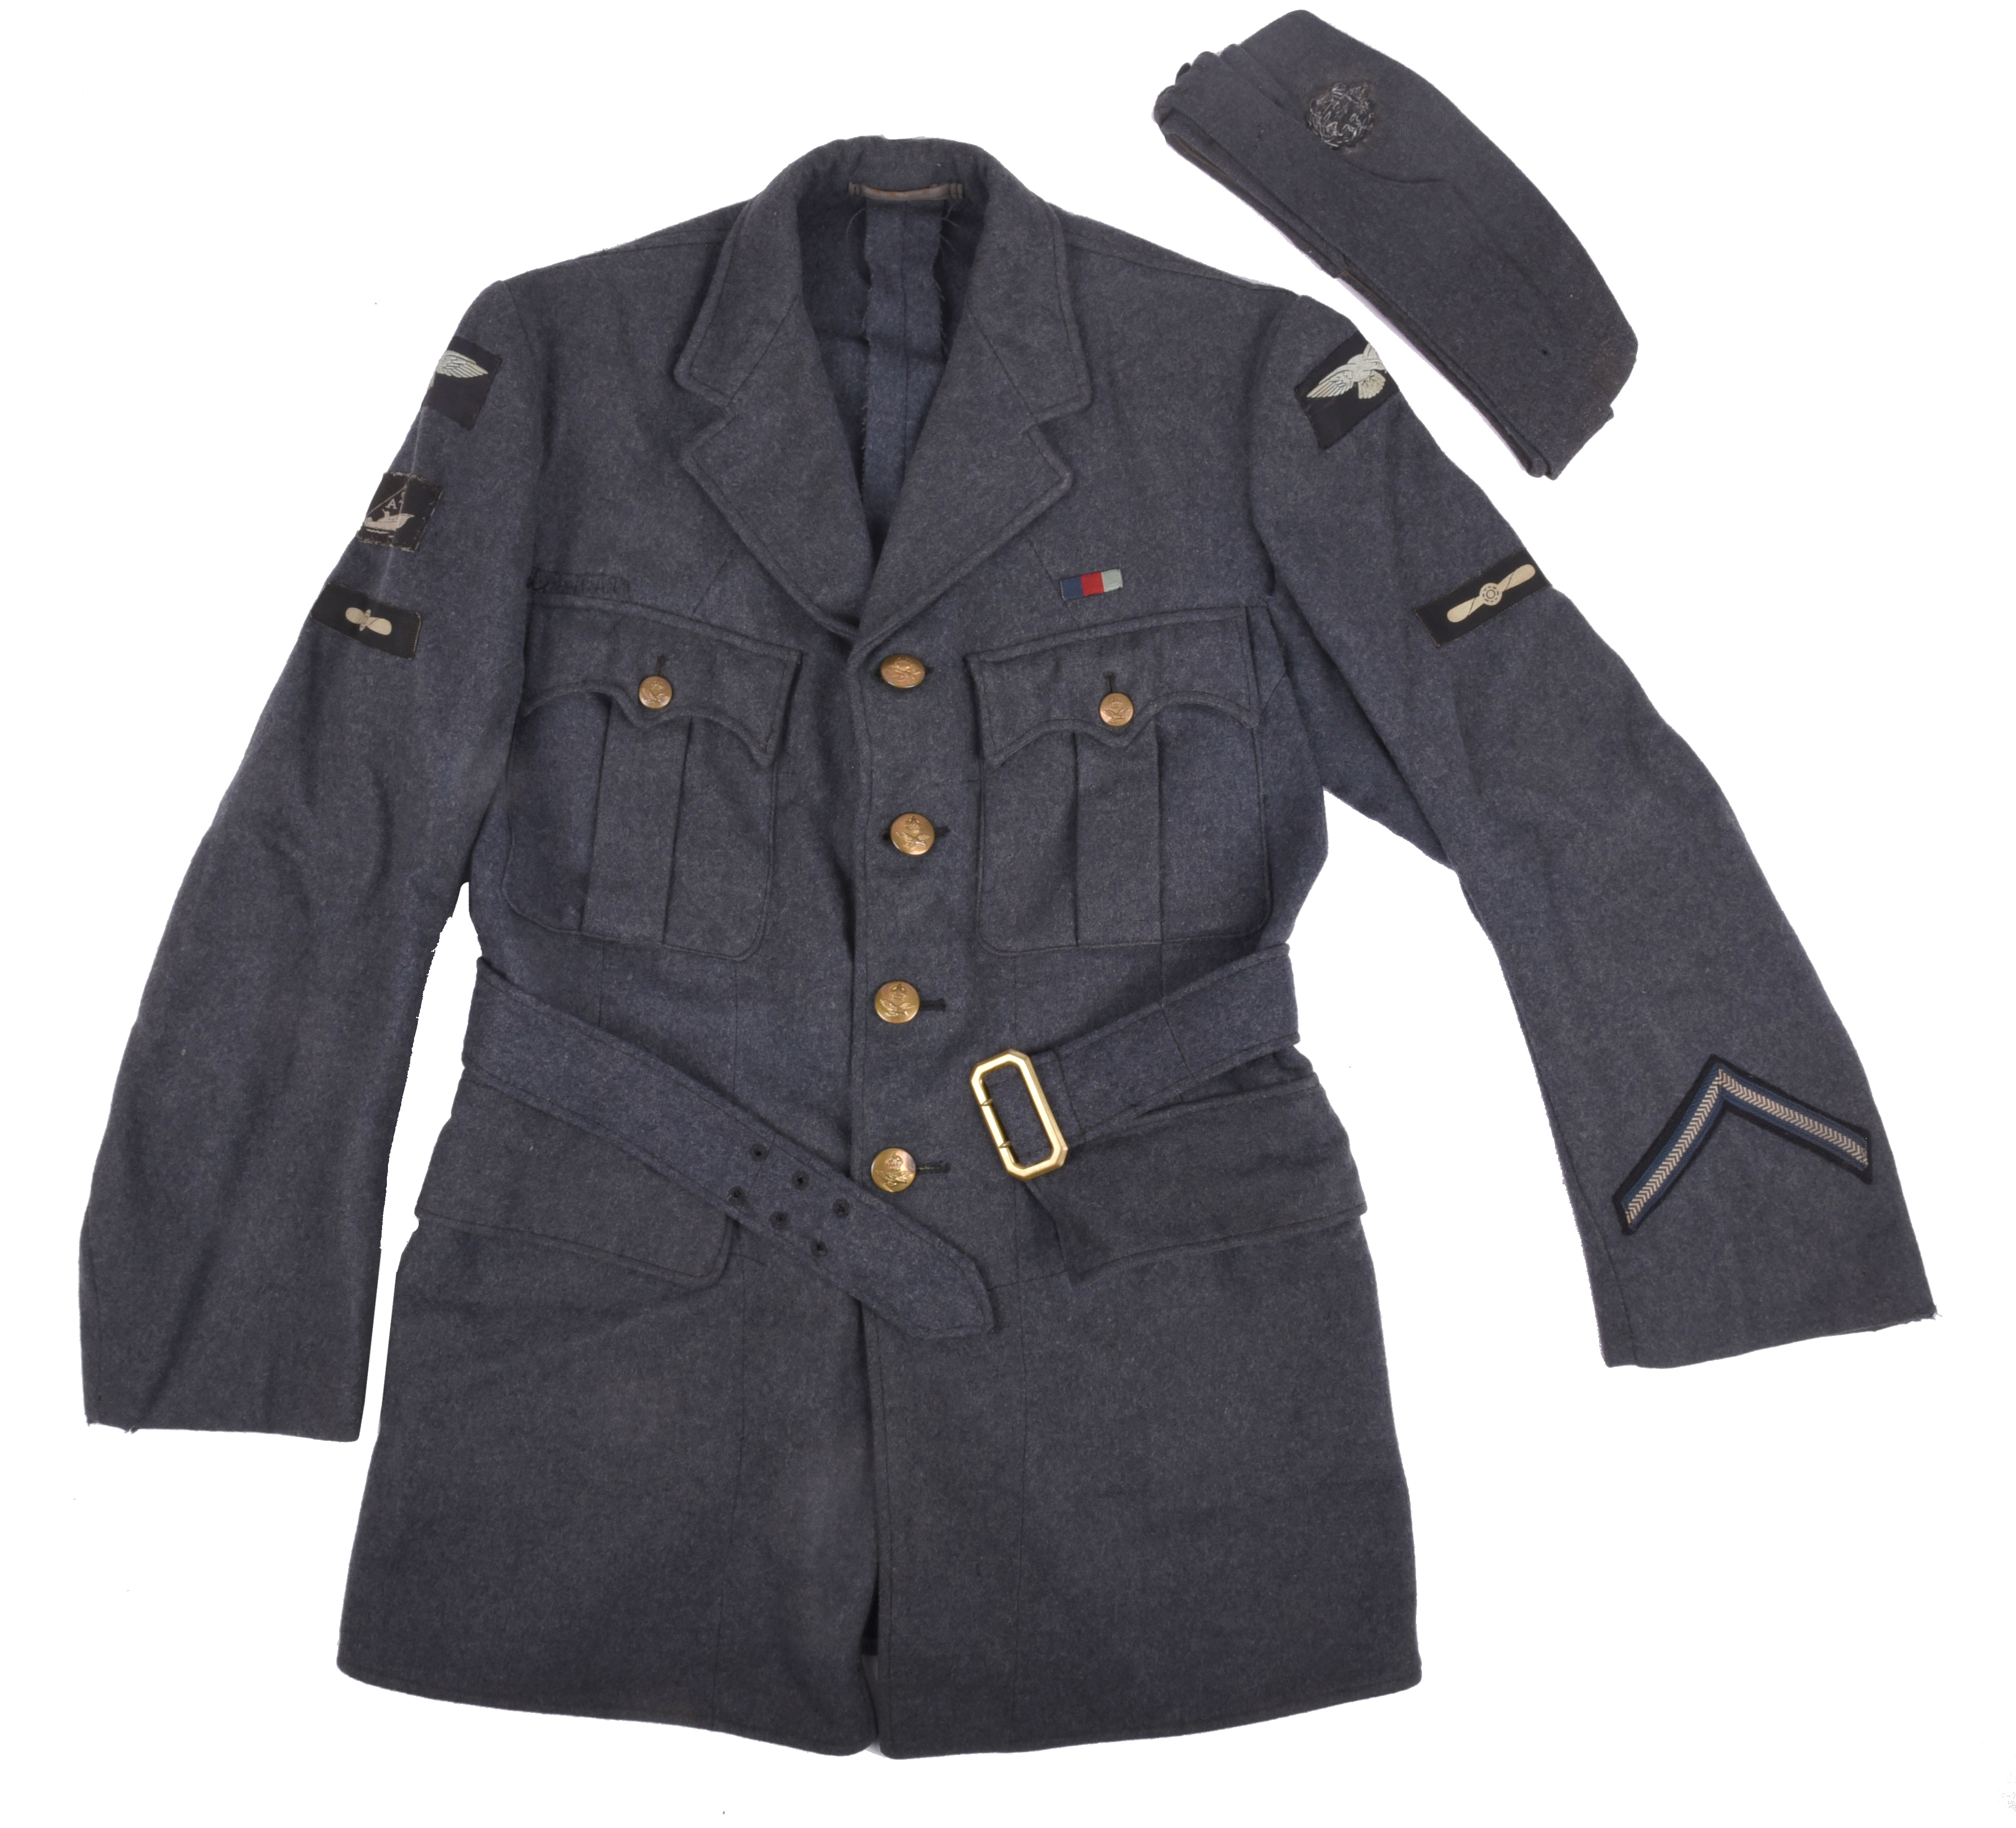 A Second World War RAF Air Sea Rescue jacket, with fabric insignia including Leading Aircraftsman